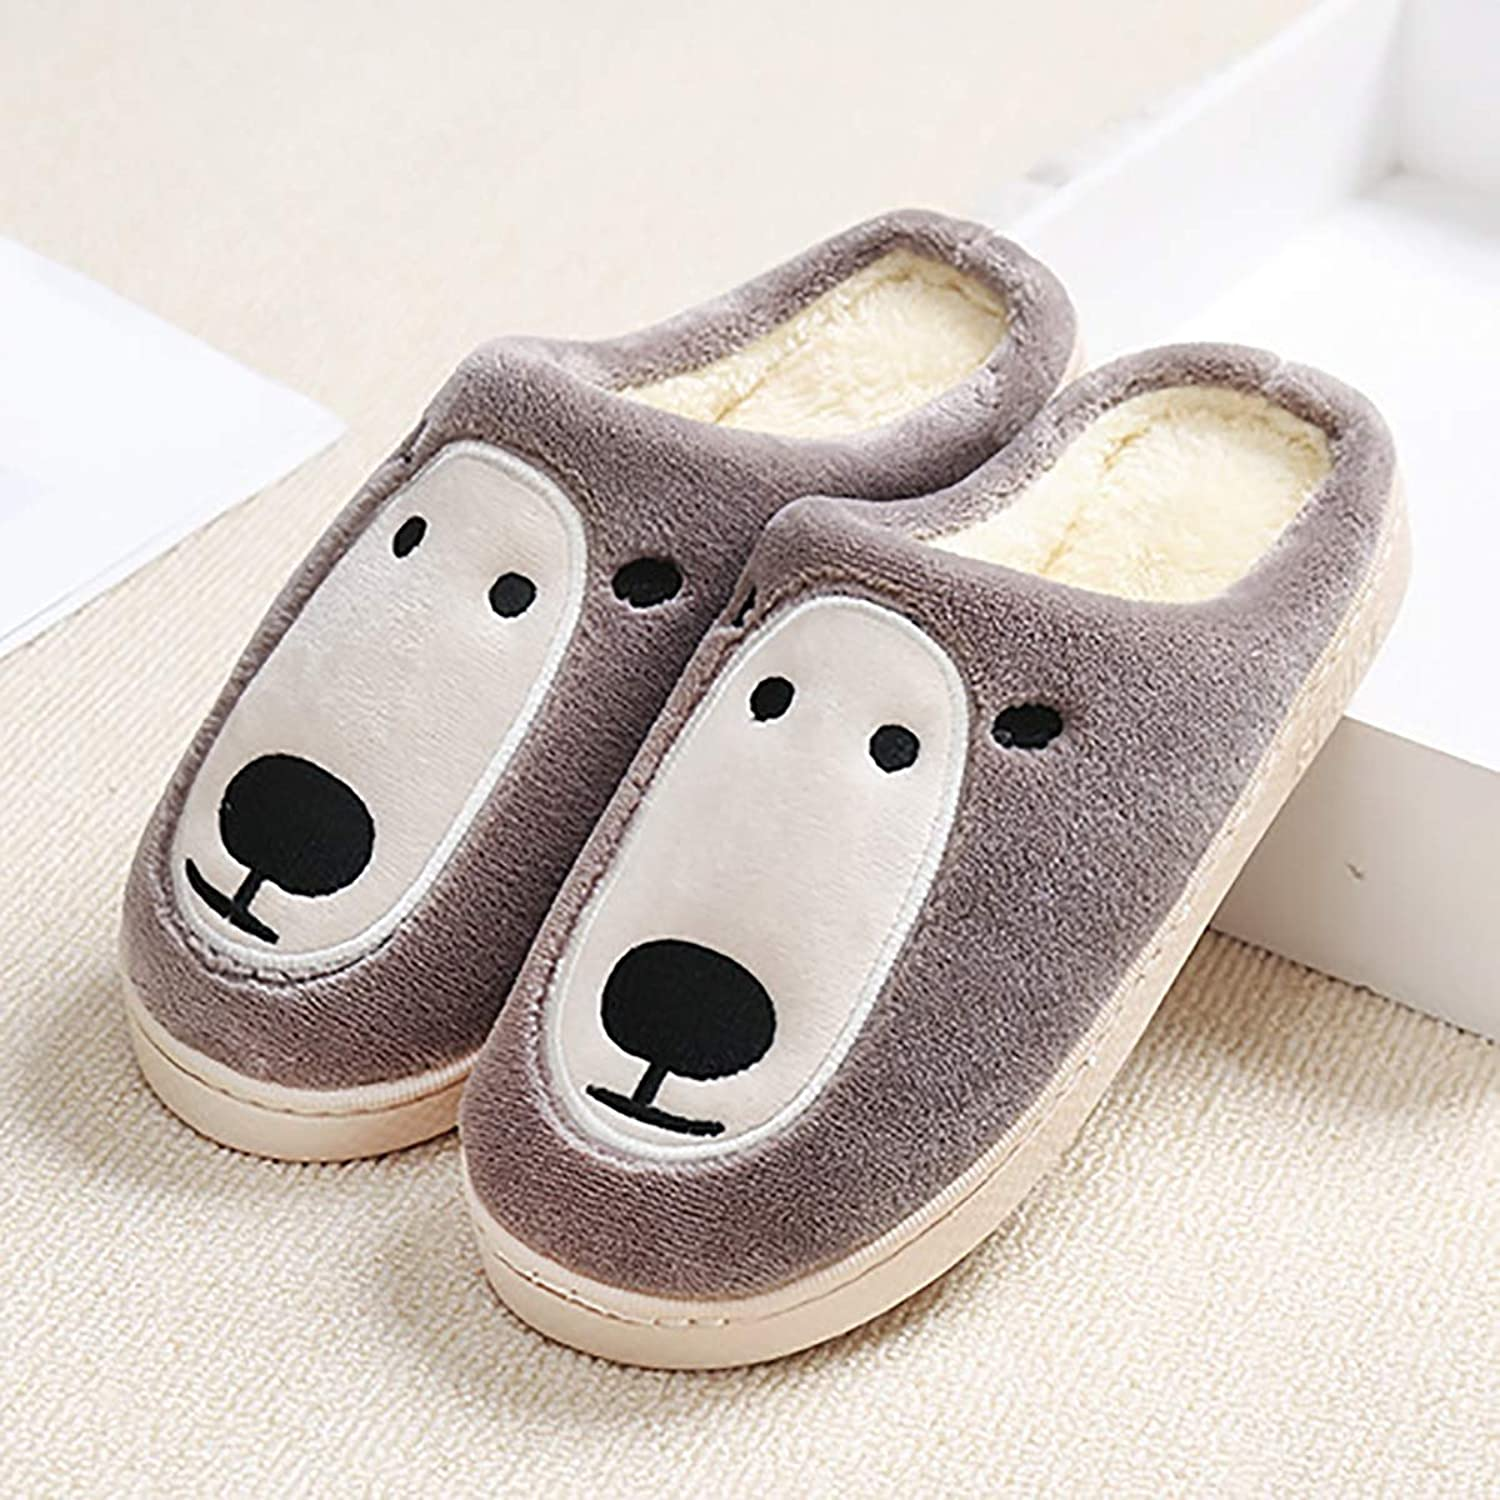 Plush Cartoon Cotton Slippers Indoor Warm Non-Slip Cotton shoes Lightweight Washable Home shoes for Men and Women,Brown,42 43